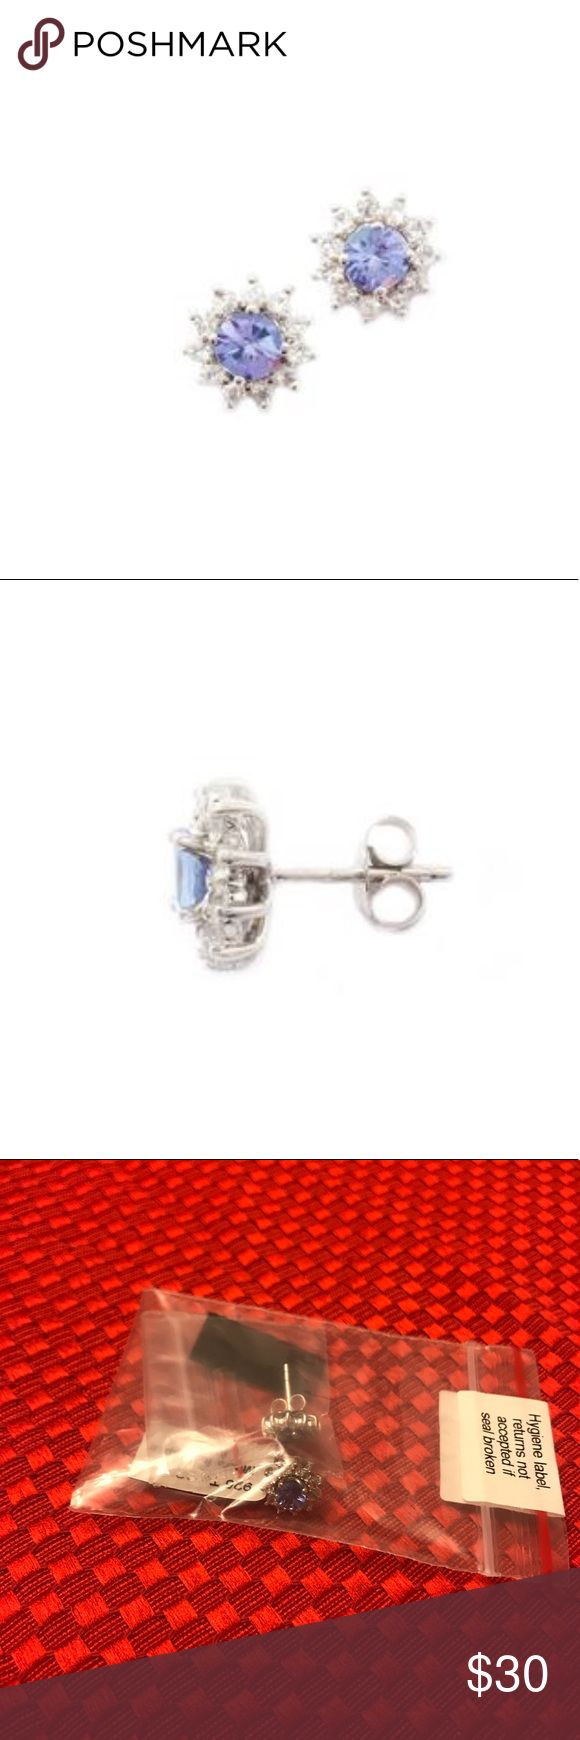 NWT! Tanzanite Earrings w/White Topaz in SS NWT! Tanzanite Earrings with White Topaz set in Sterling Silver, 1.58cts  2 gems AA clarity Tanzanite, .98cts 22 gems White Topaz, 0.60cts    Check out the other listings in my closet and bundle to save! Offers welcome🌸 Jewelry Earrings